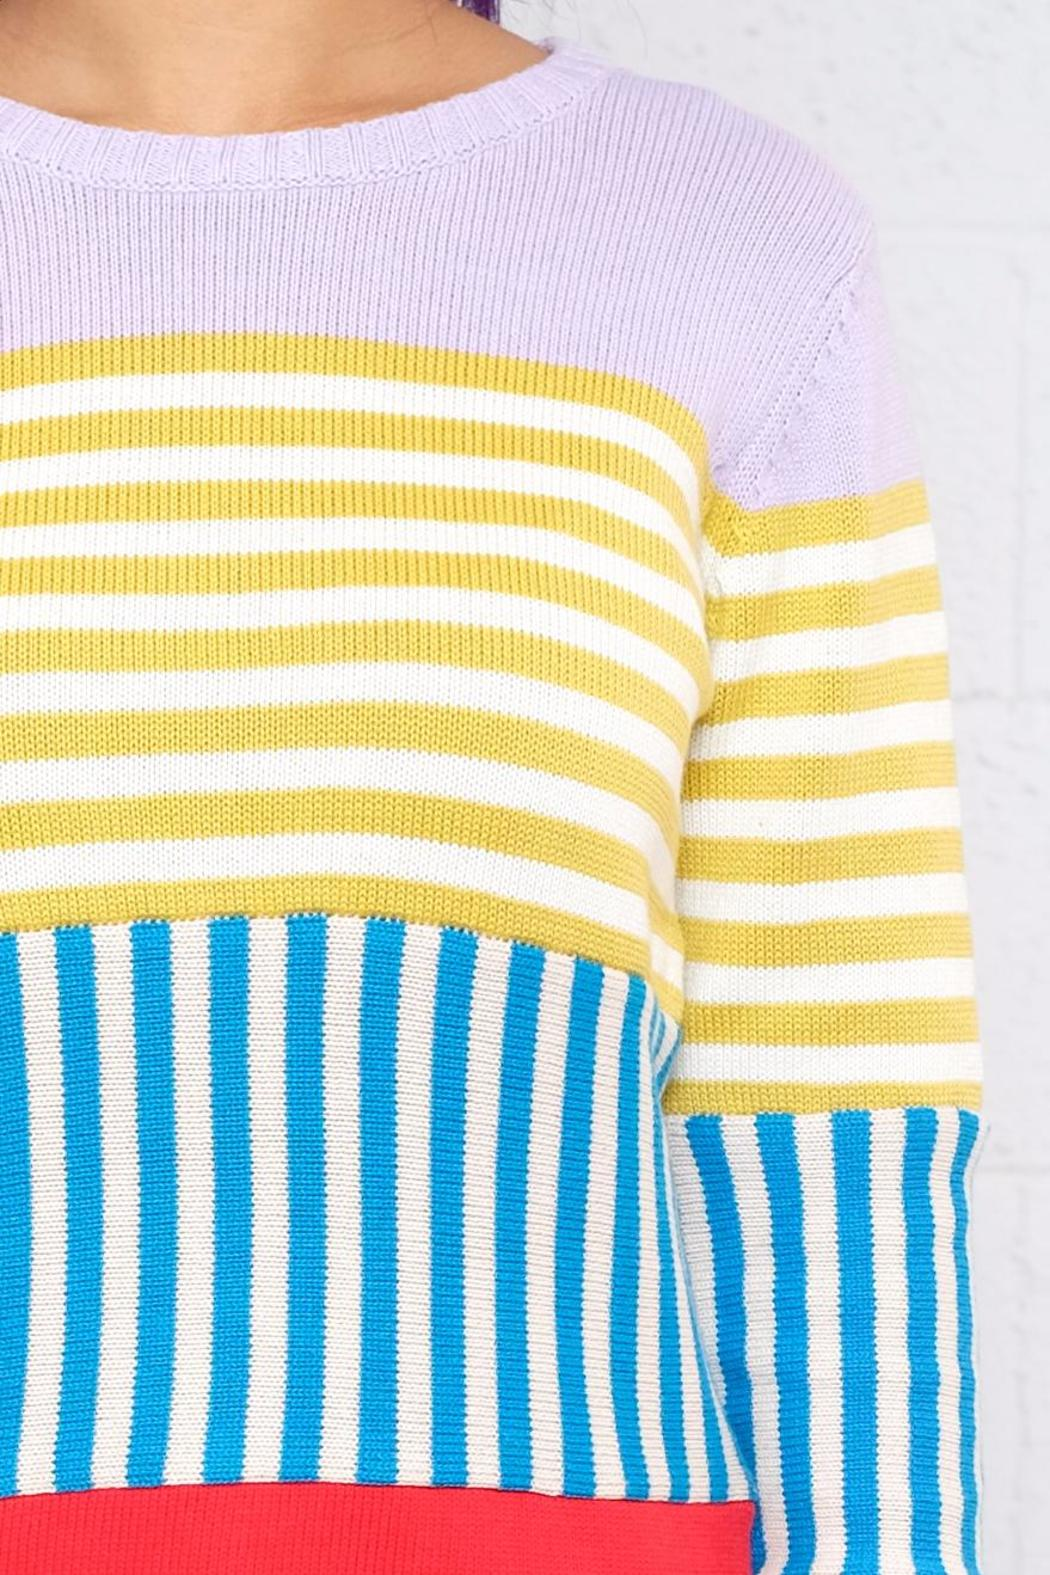 Signature 8 Block Stripe Sweater from Vancouver by 8th & Main ...